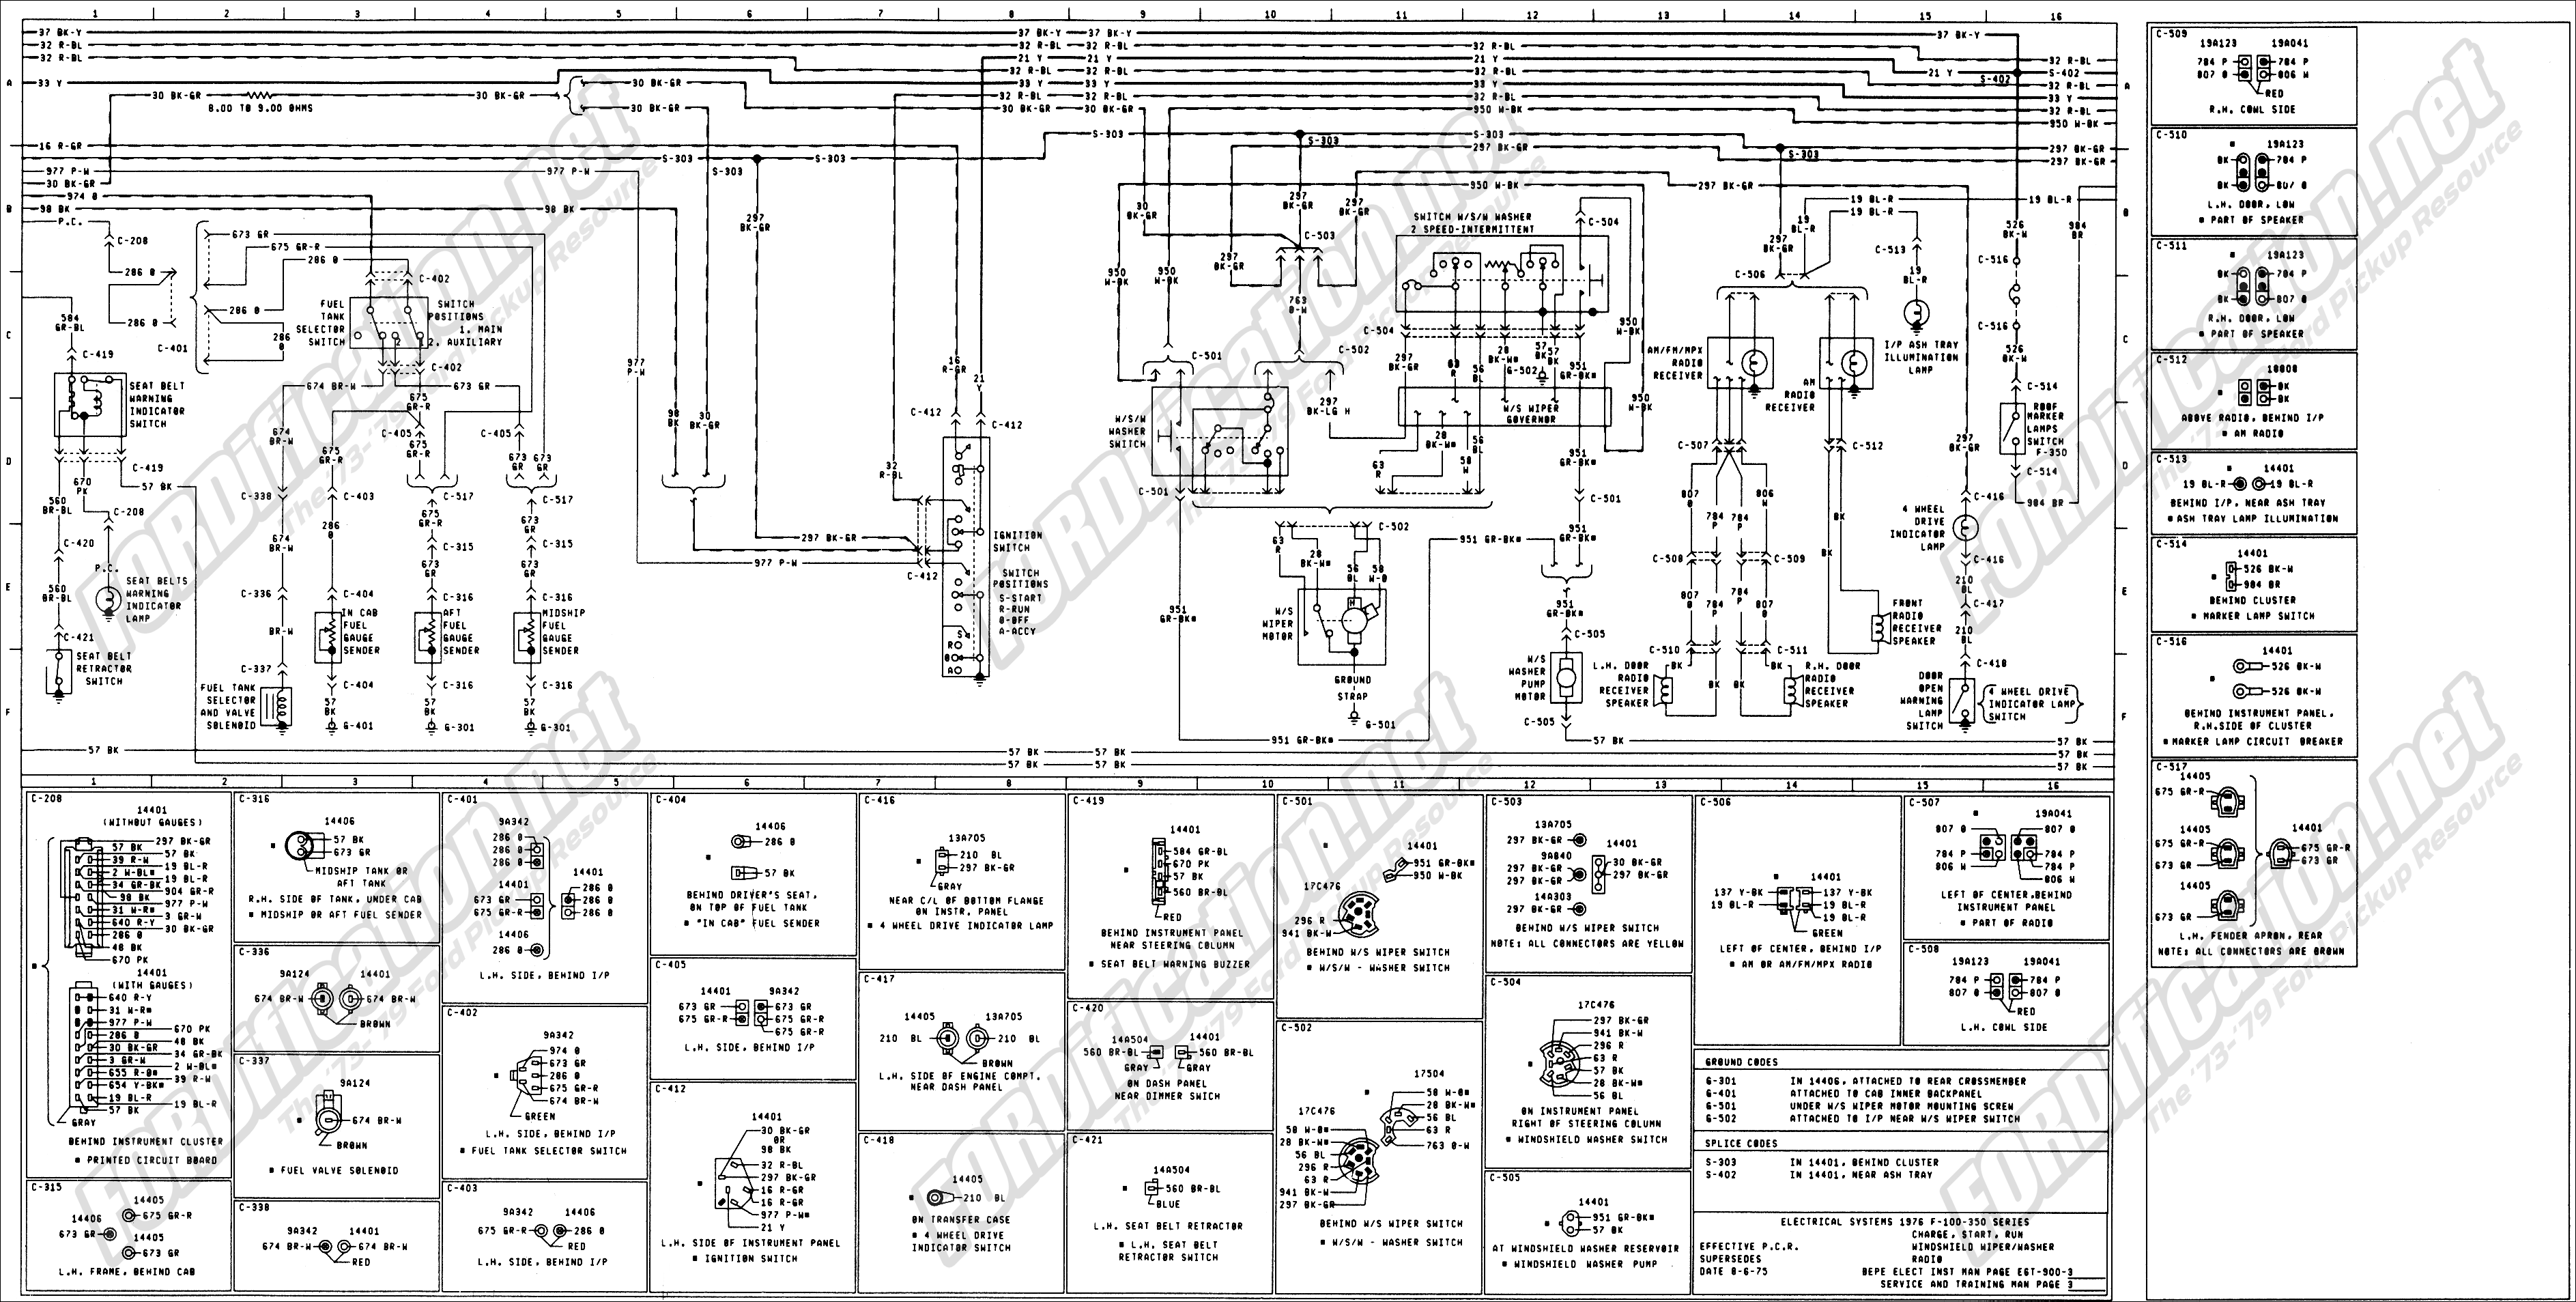 2002 Jaguar S Type Fuse Box Diagram Html together with Atlas Controller Wiring Diagram further 2002 Ford Focus Serpentine Belt Diagram Print as well Mack Cxu613 Fuse Panel Diagram in addition 1992 Gmc Yukon Wiring Diagram. on light fuse box